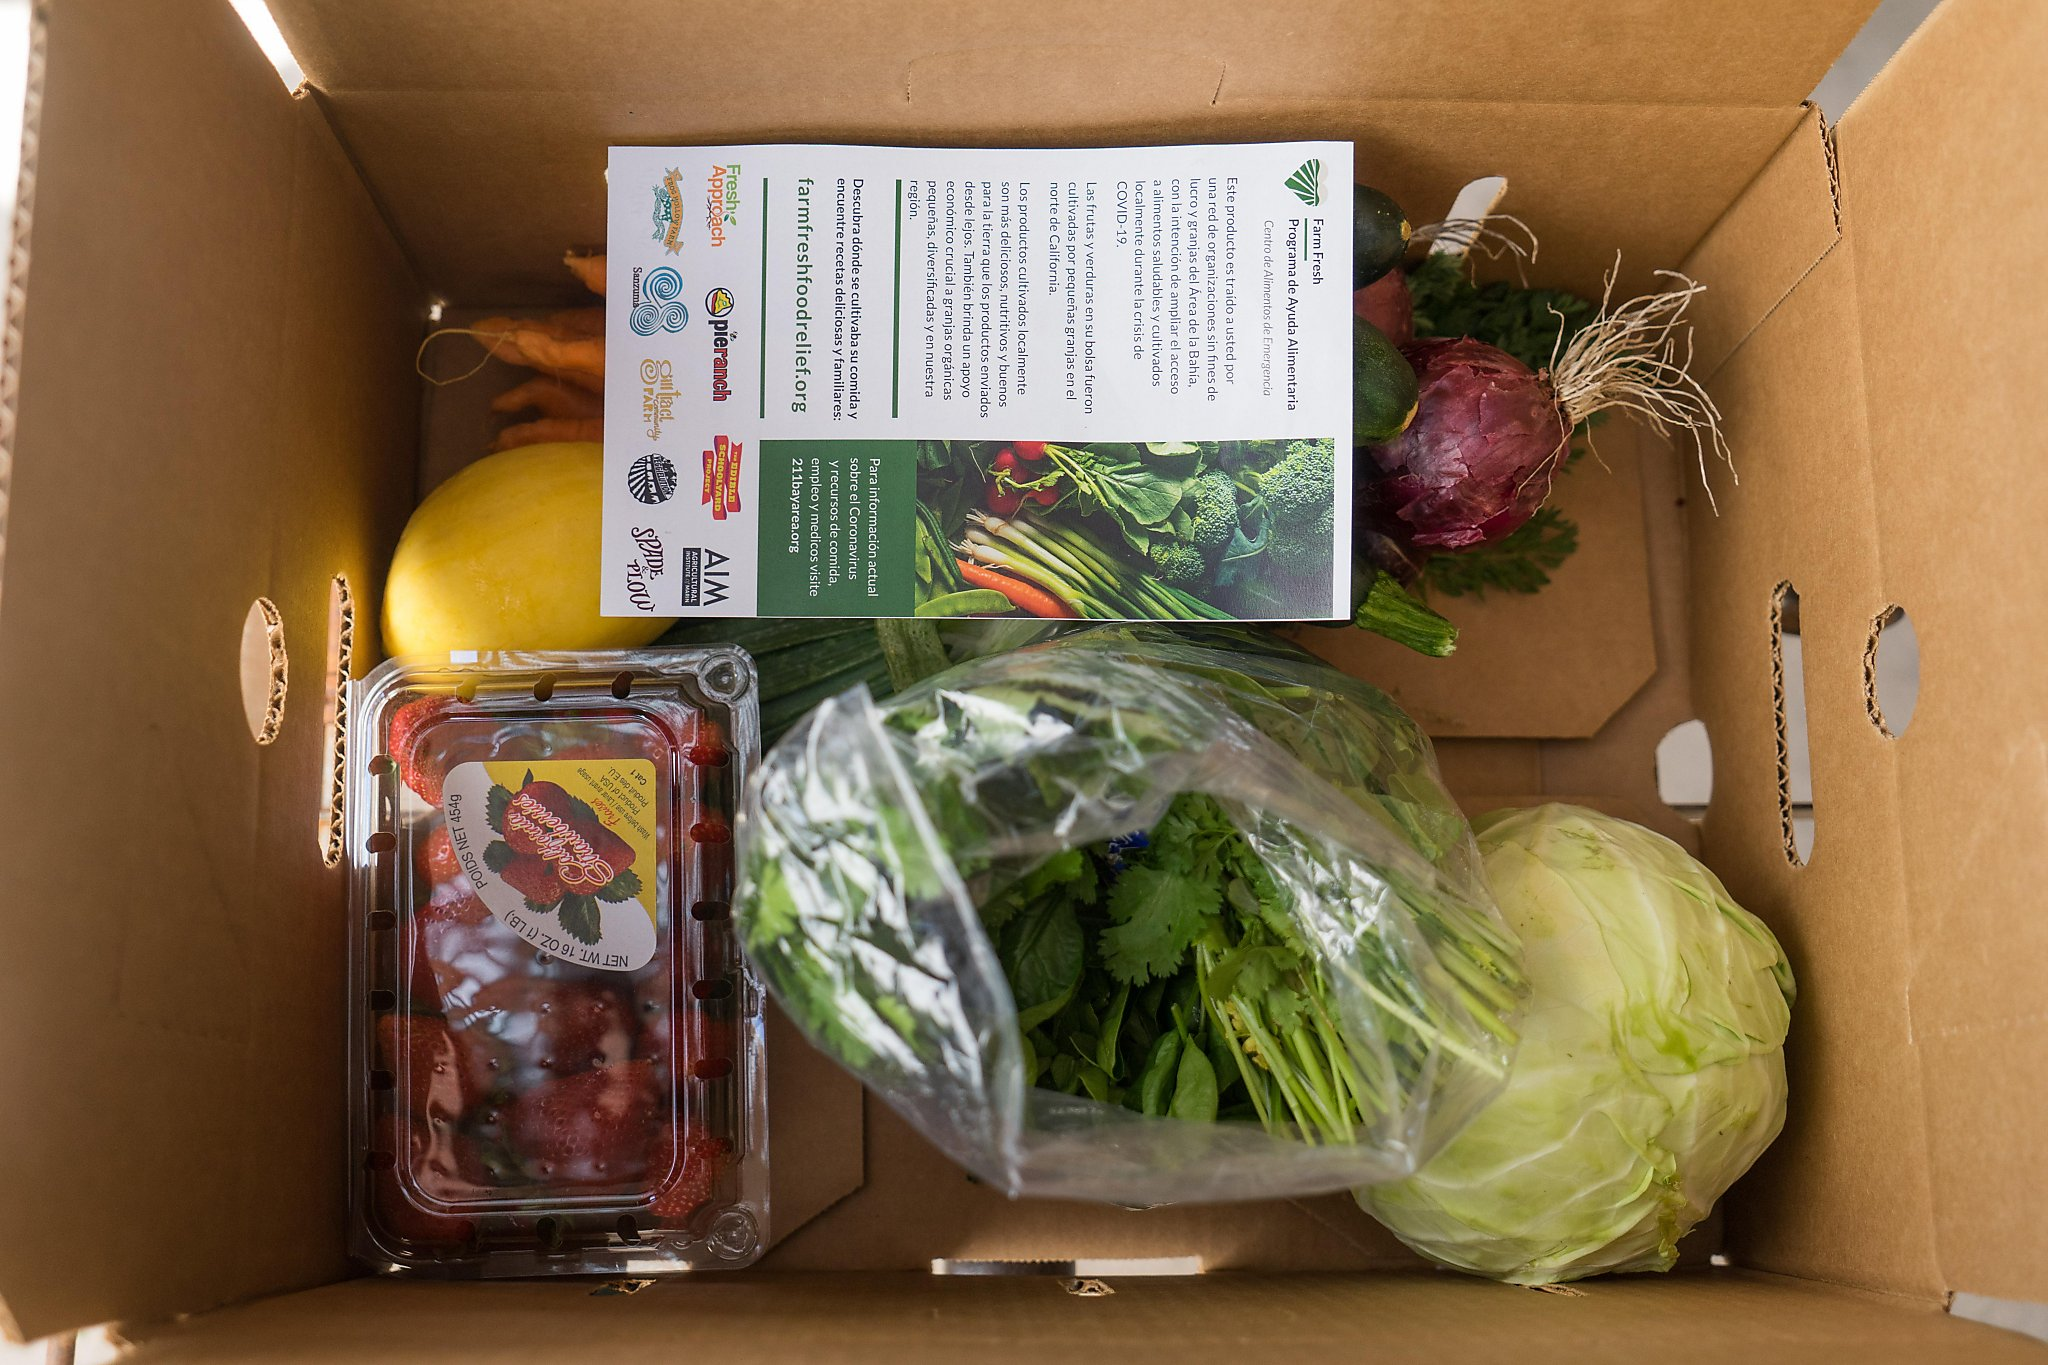 As Bay Area restaurant business drops, local farms send produce to struggling families